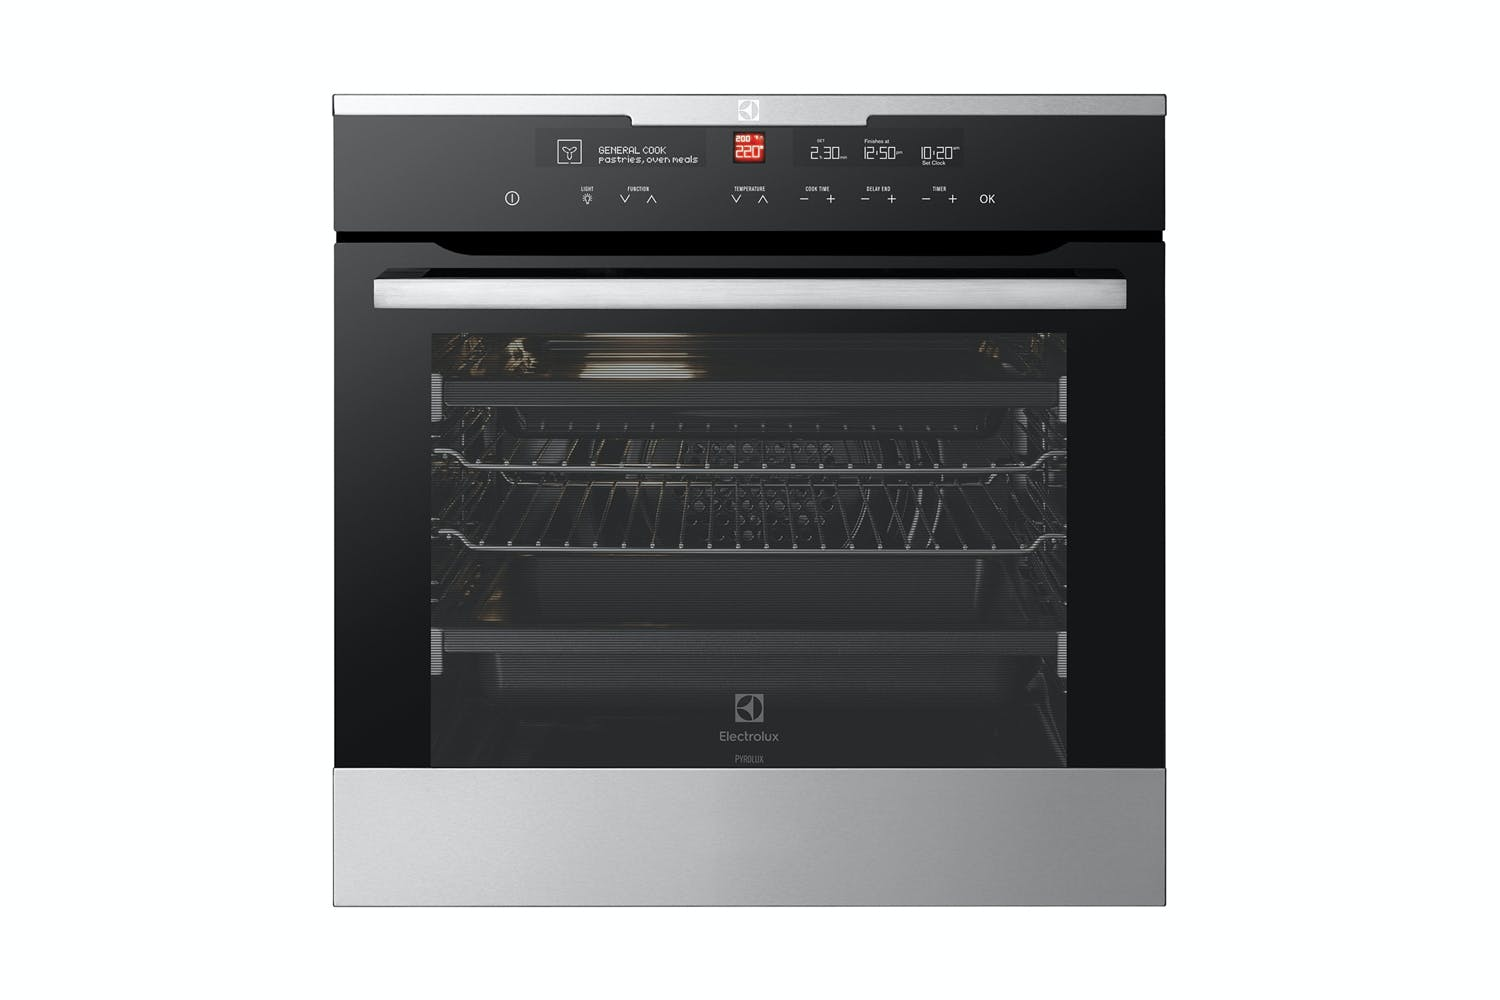 Electrolux 60cm 13 Function Pyrolytic Oven Harvey Norman